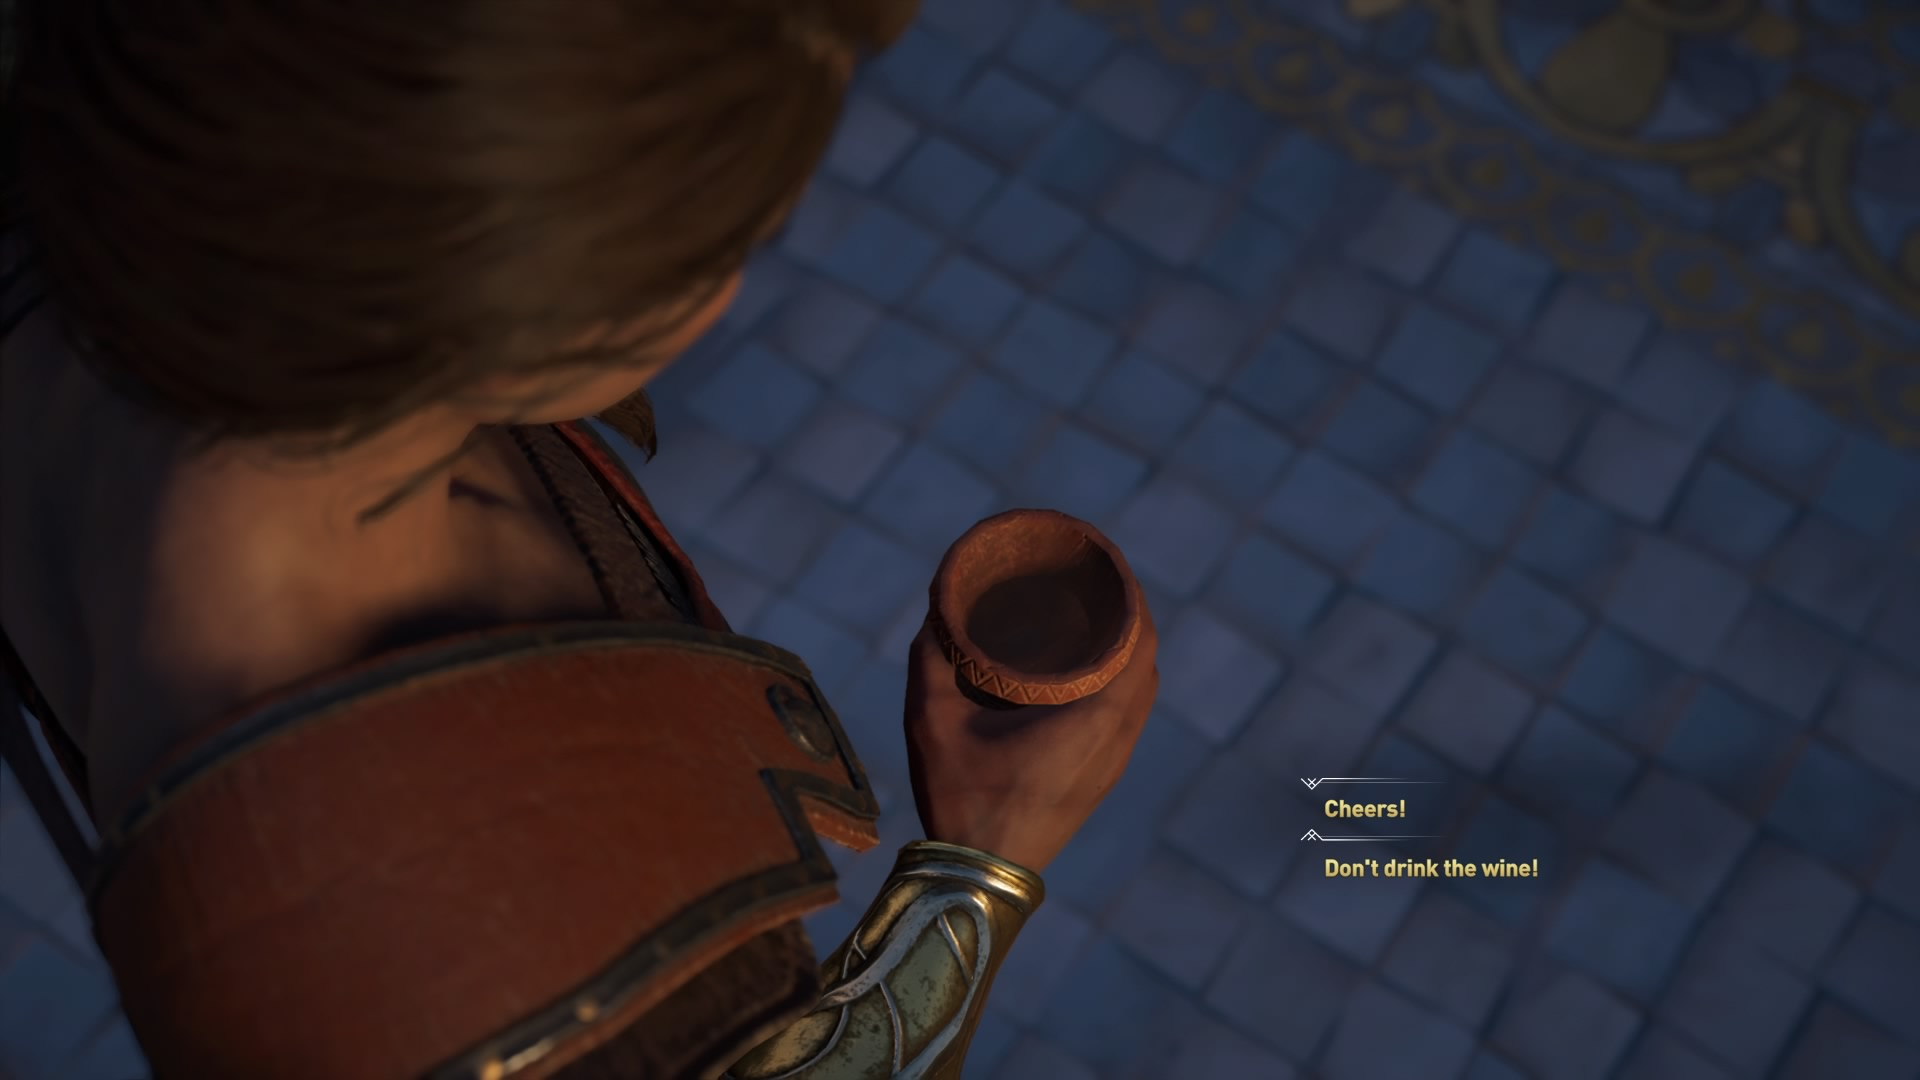 Assassin's Creed Odyssey: Fate of Atlantis ending and selections